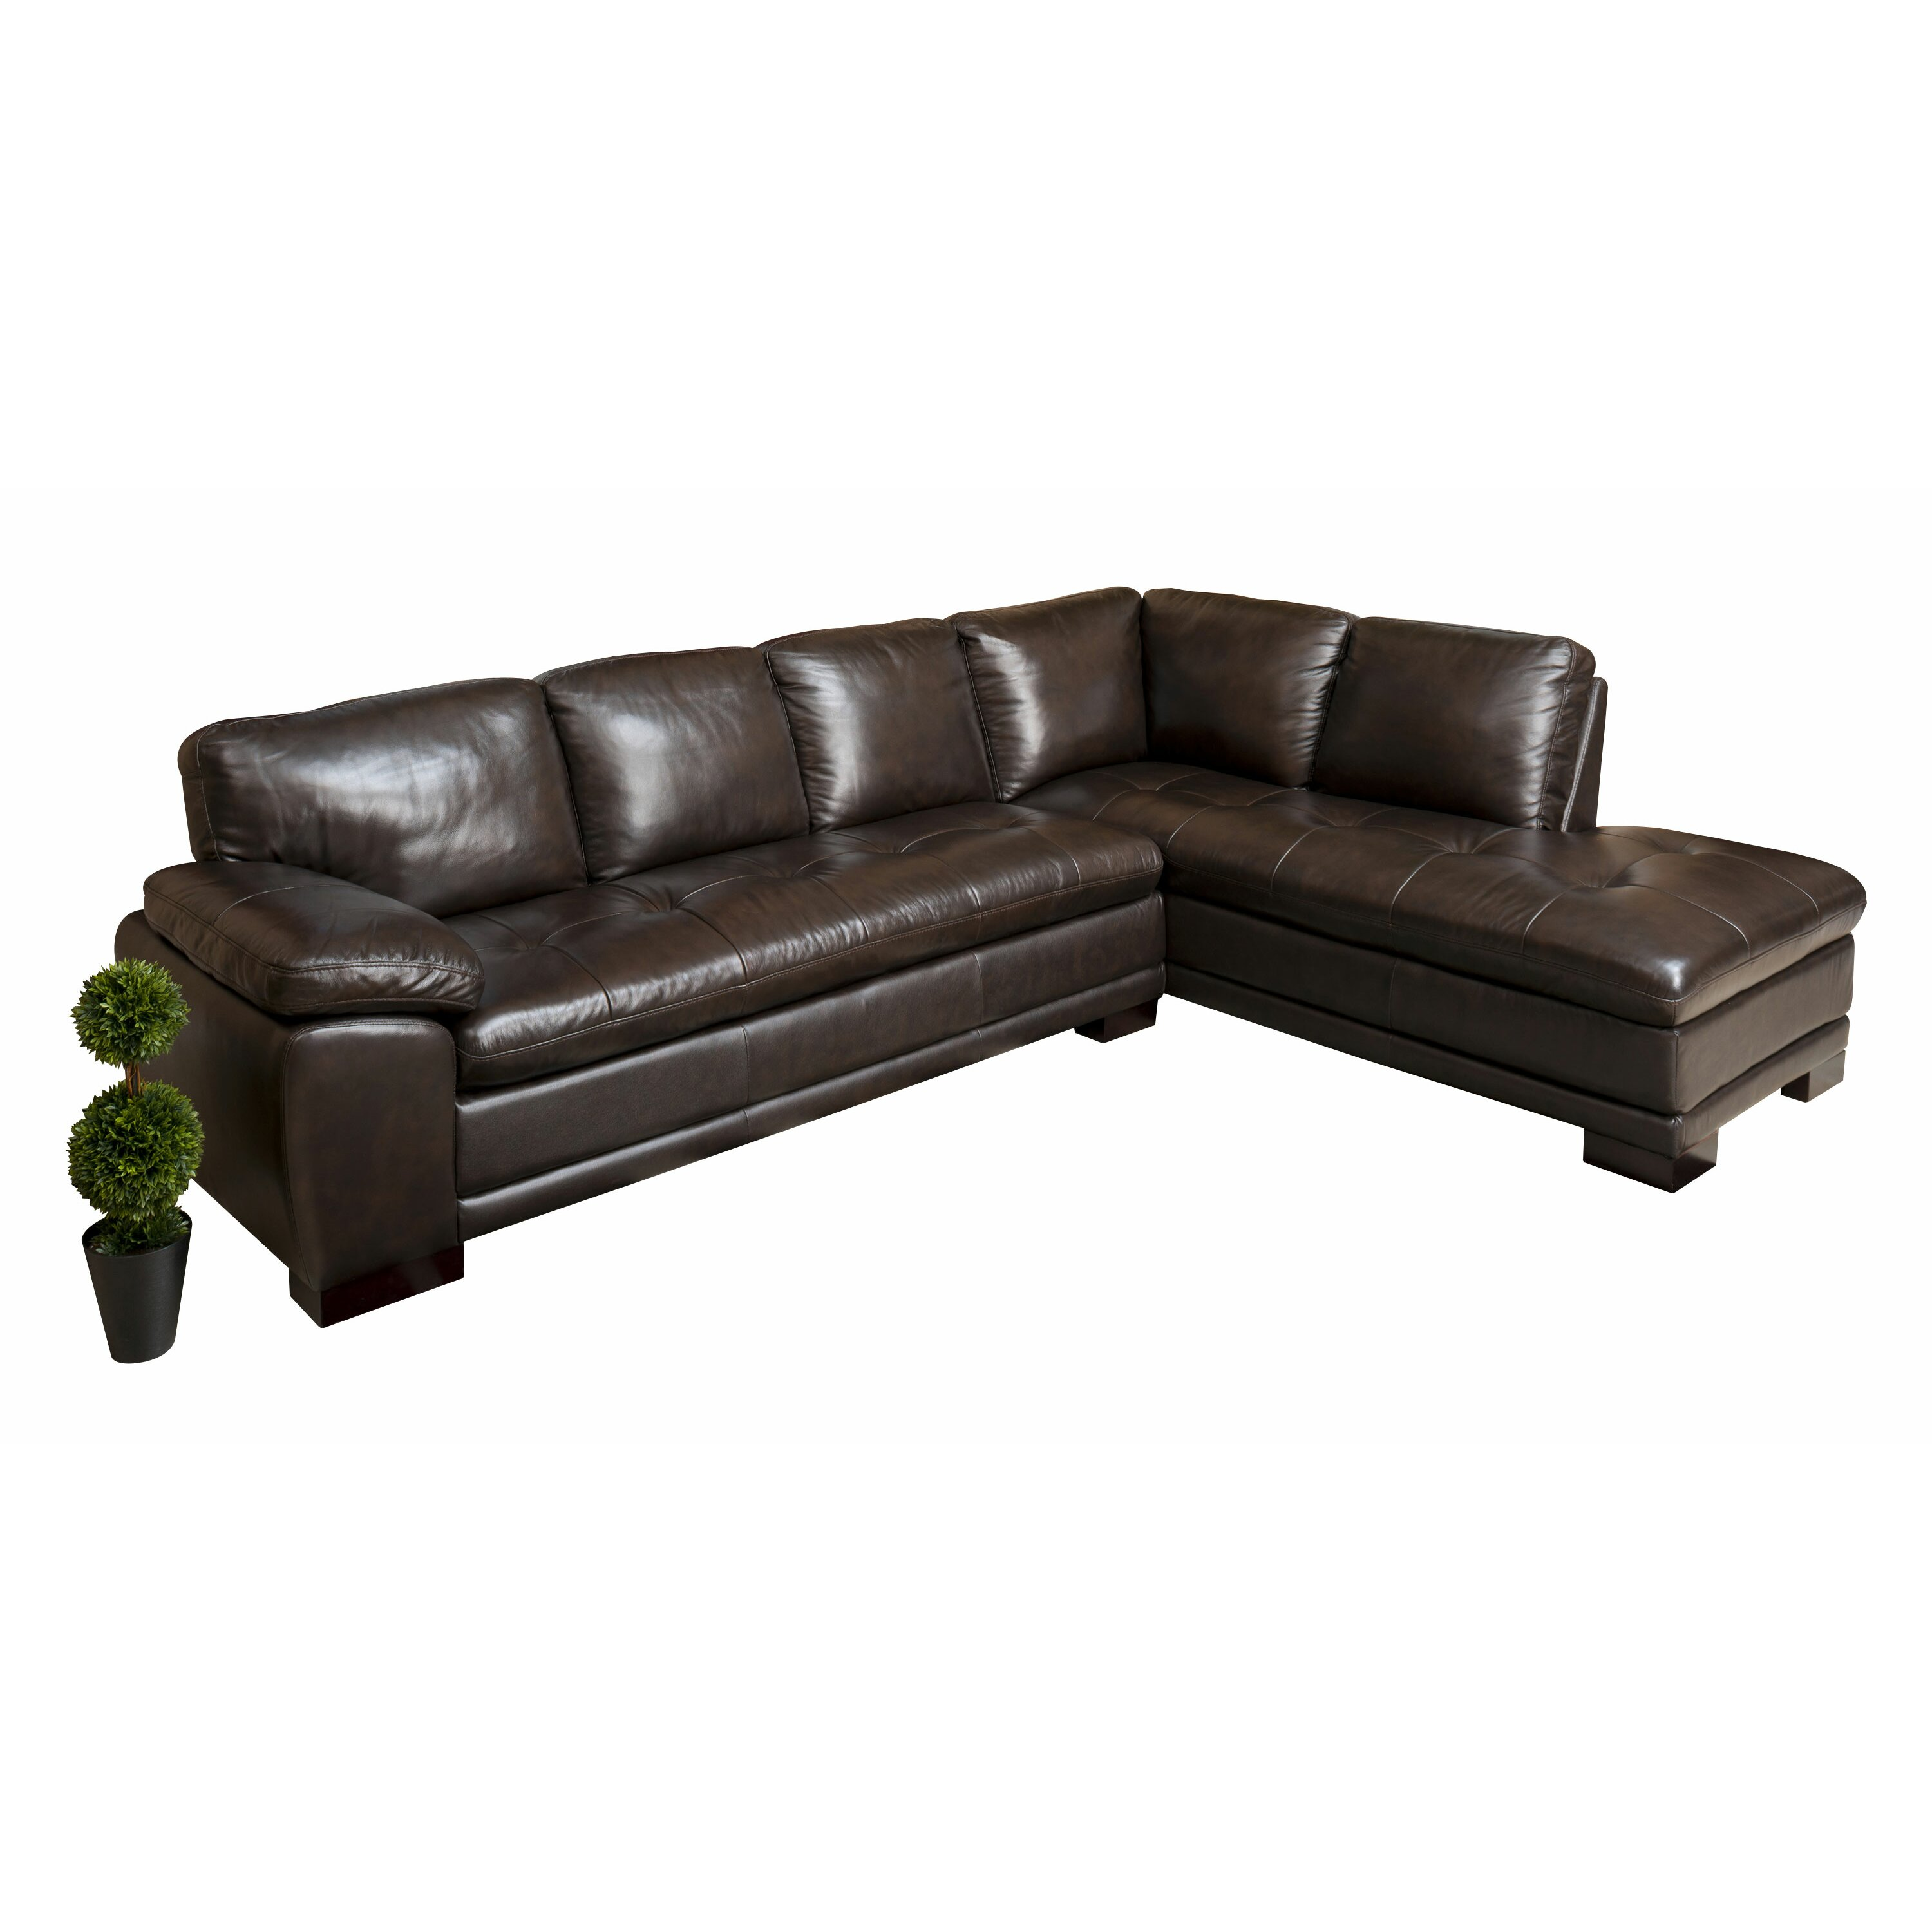 abbyson living tivoli sectional reviews wayfair